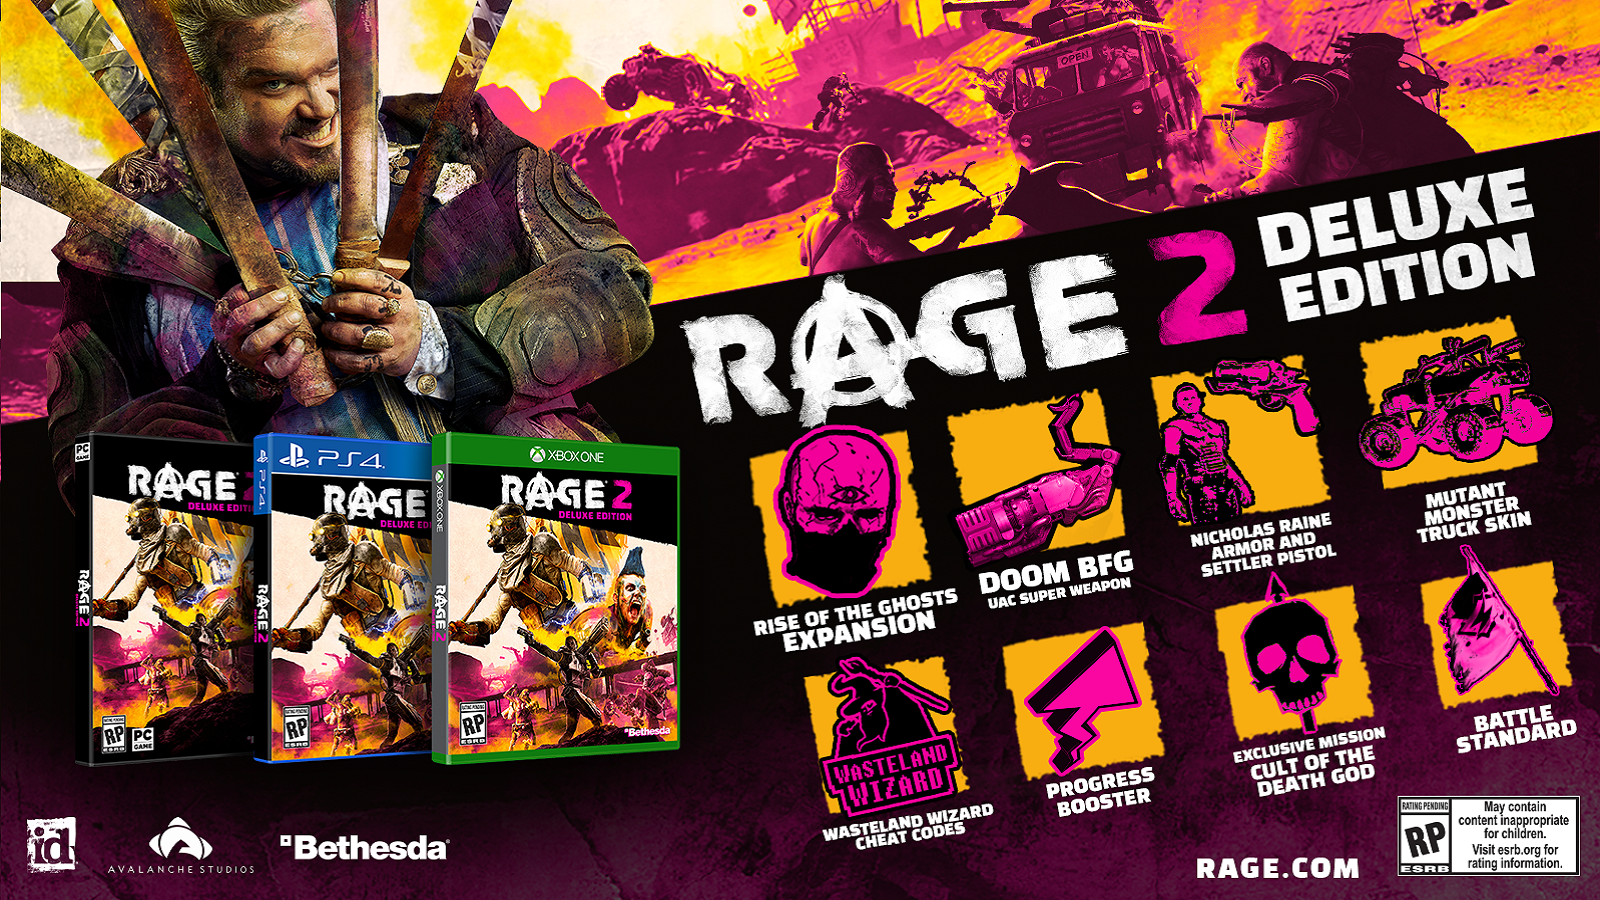 Rage 2; wallpaper, deluxe edition